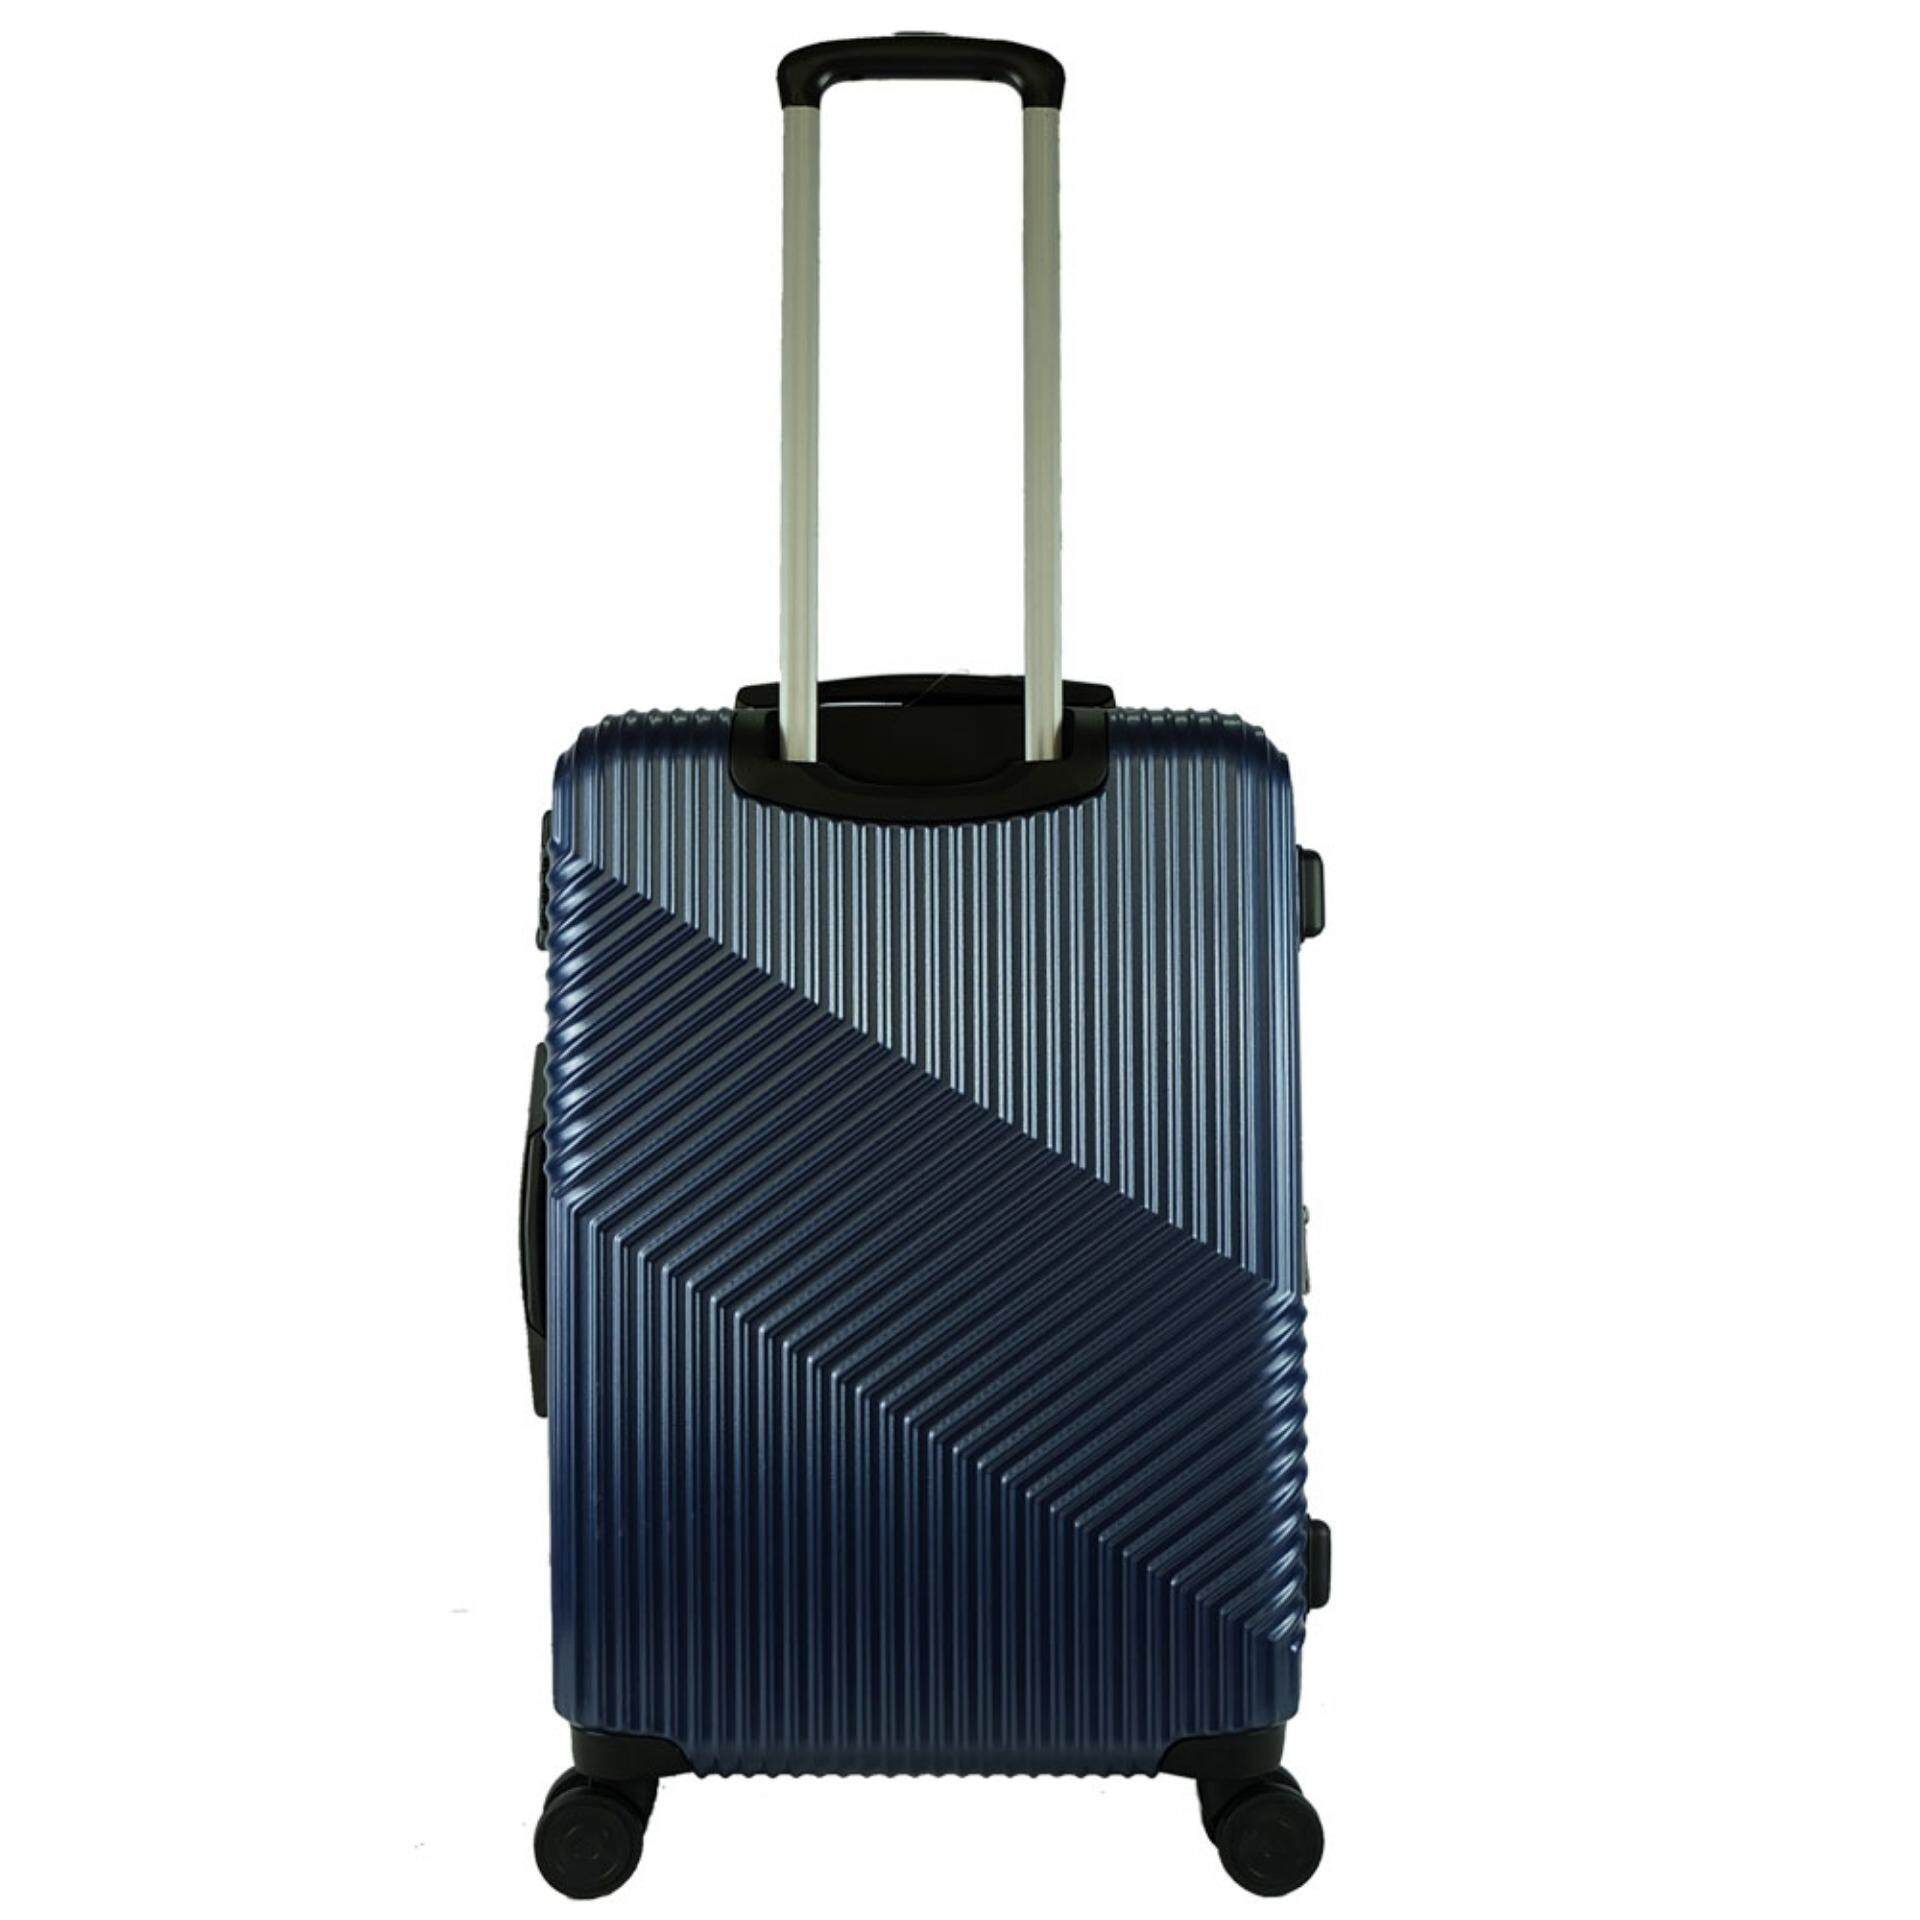 Giordano GA9618 28inch Ultra Strength Expendable ABS Hard Case Trolley (Navy)